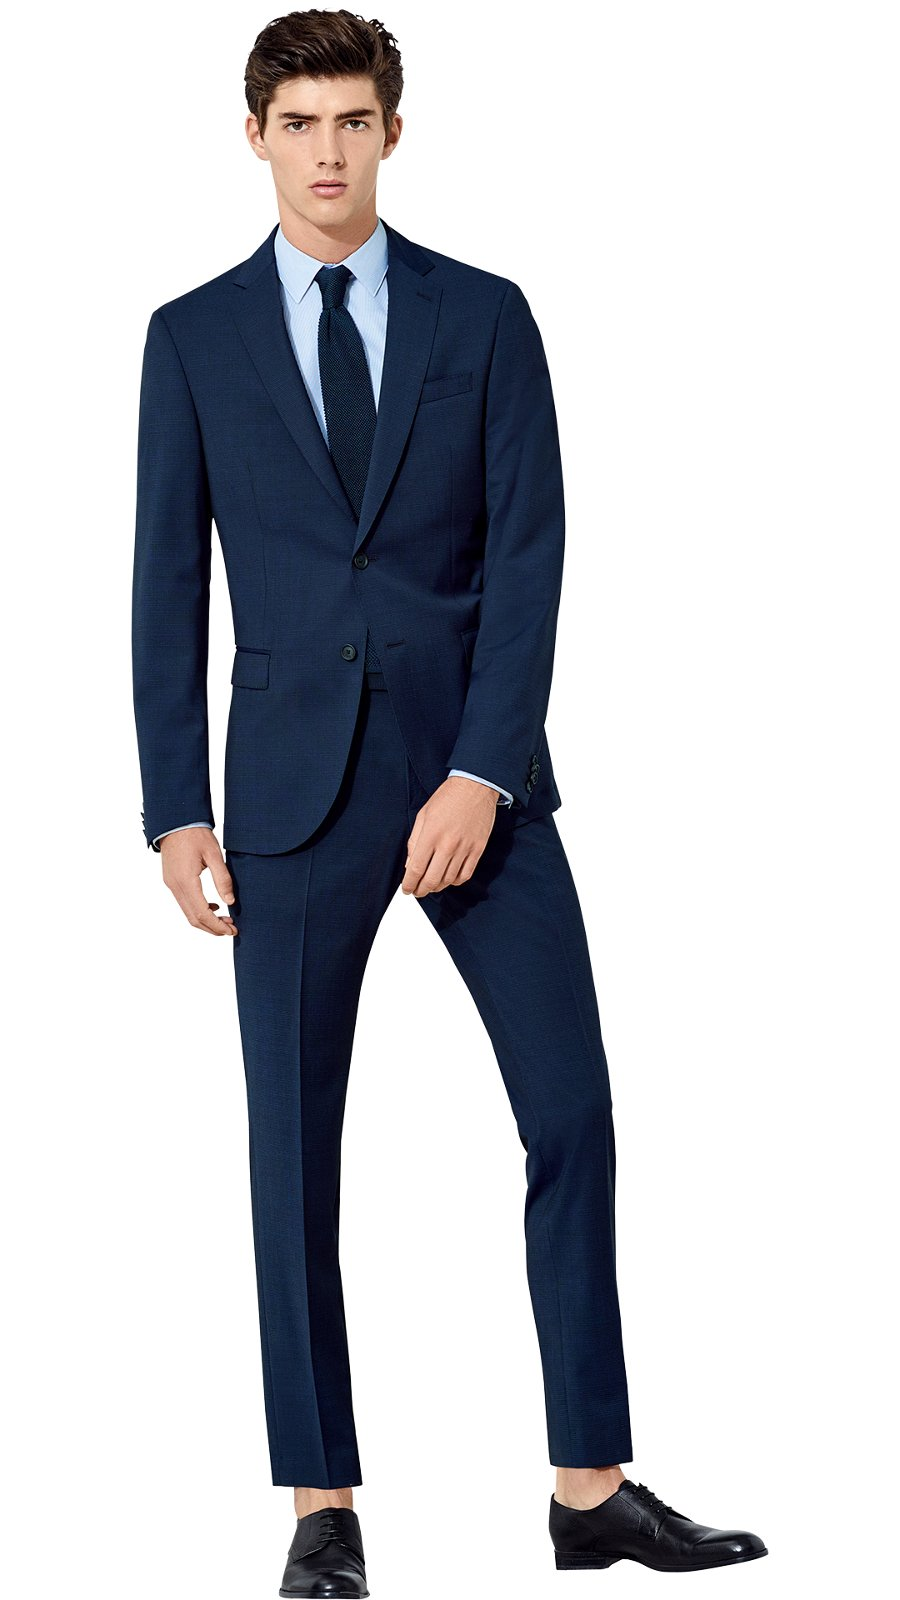 4dbcecfa191 Man is wearing a blue suit